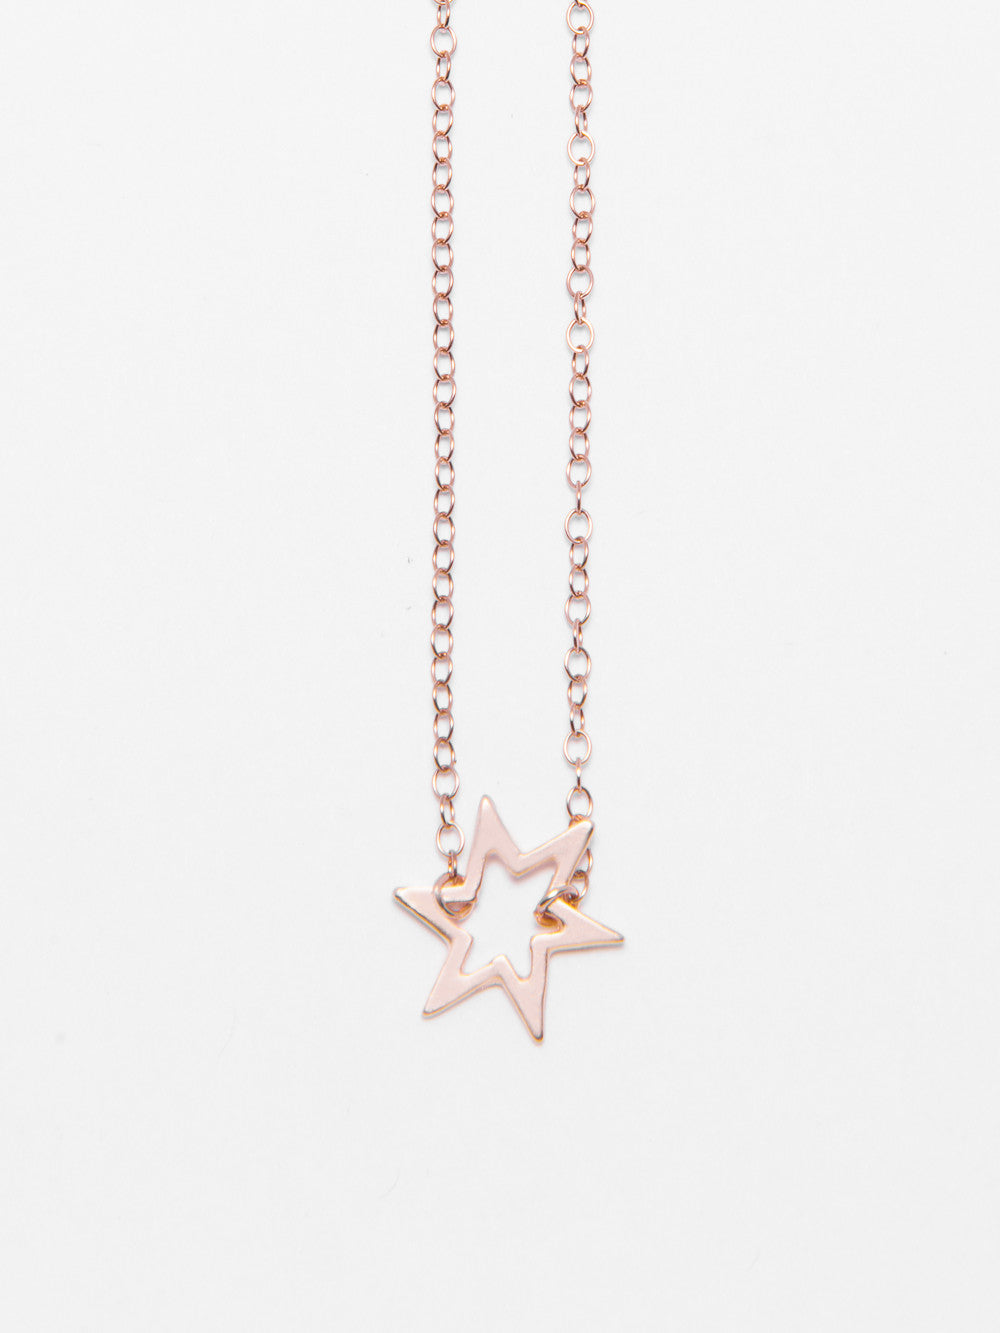 Starbursts Necklace